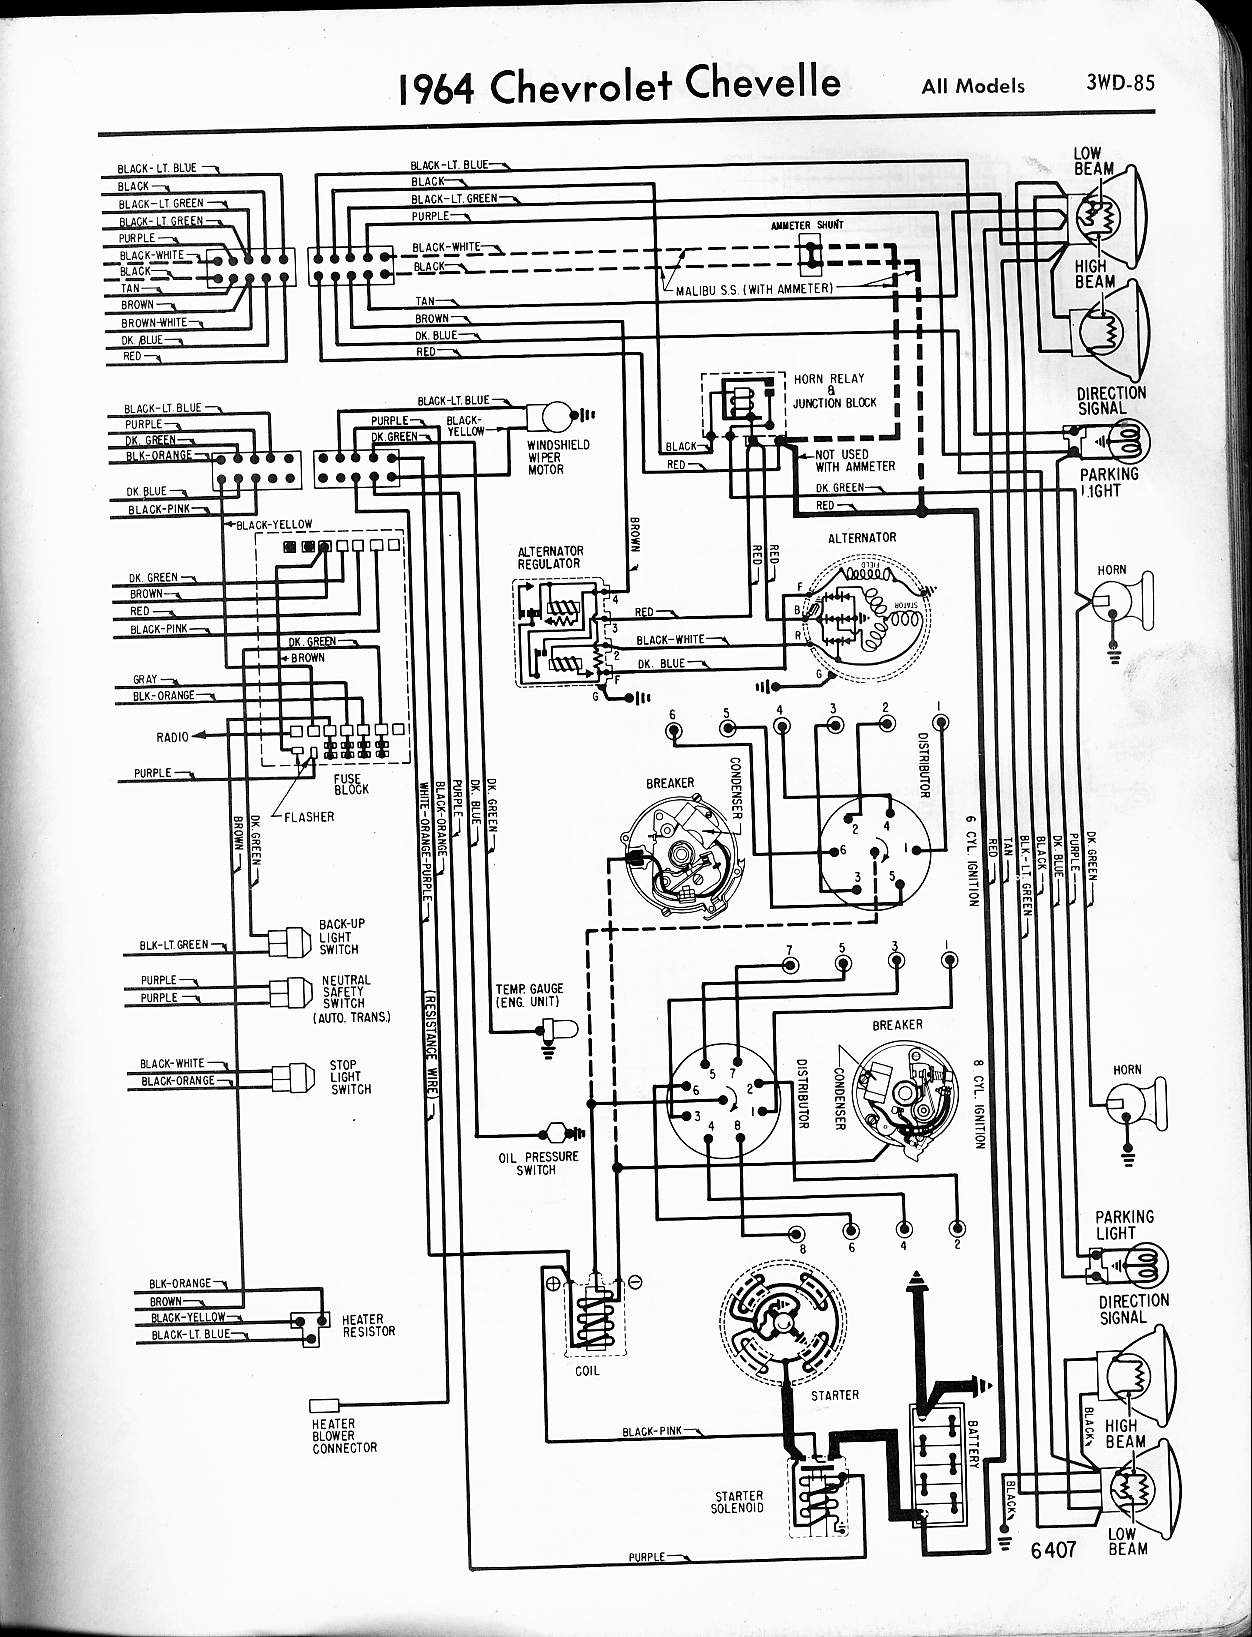 1969 malibu wiring diagrams chevy diagrams #11